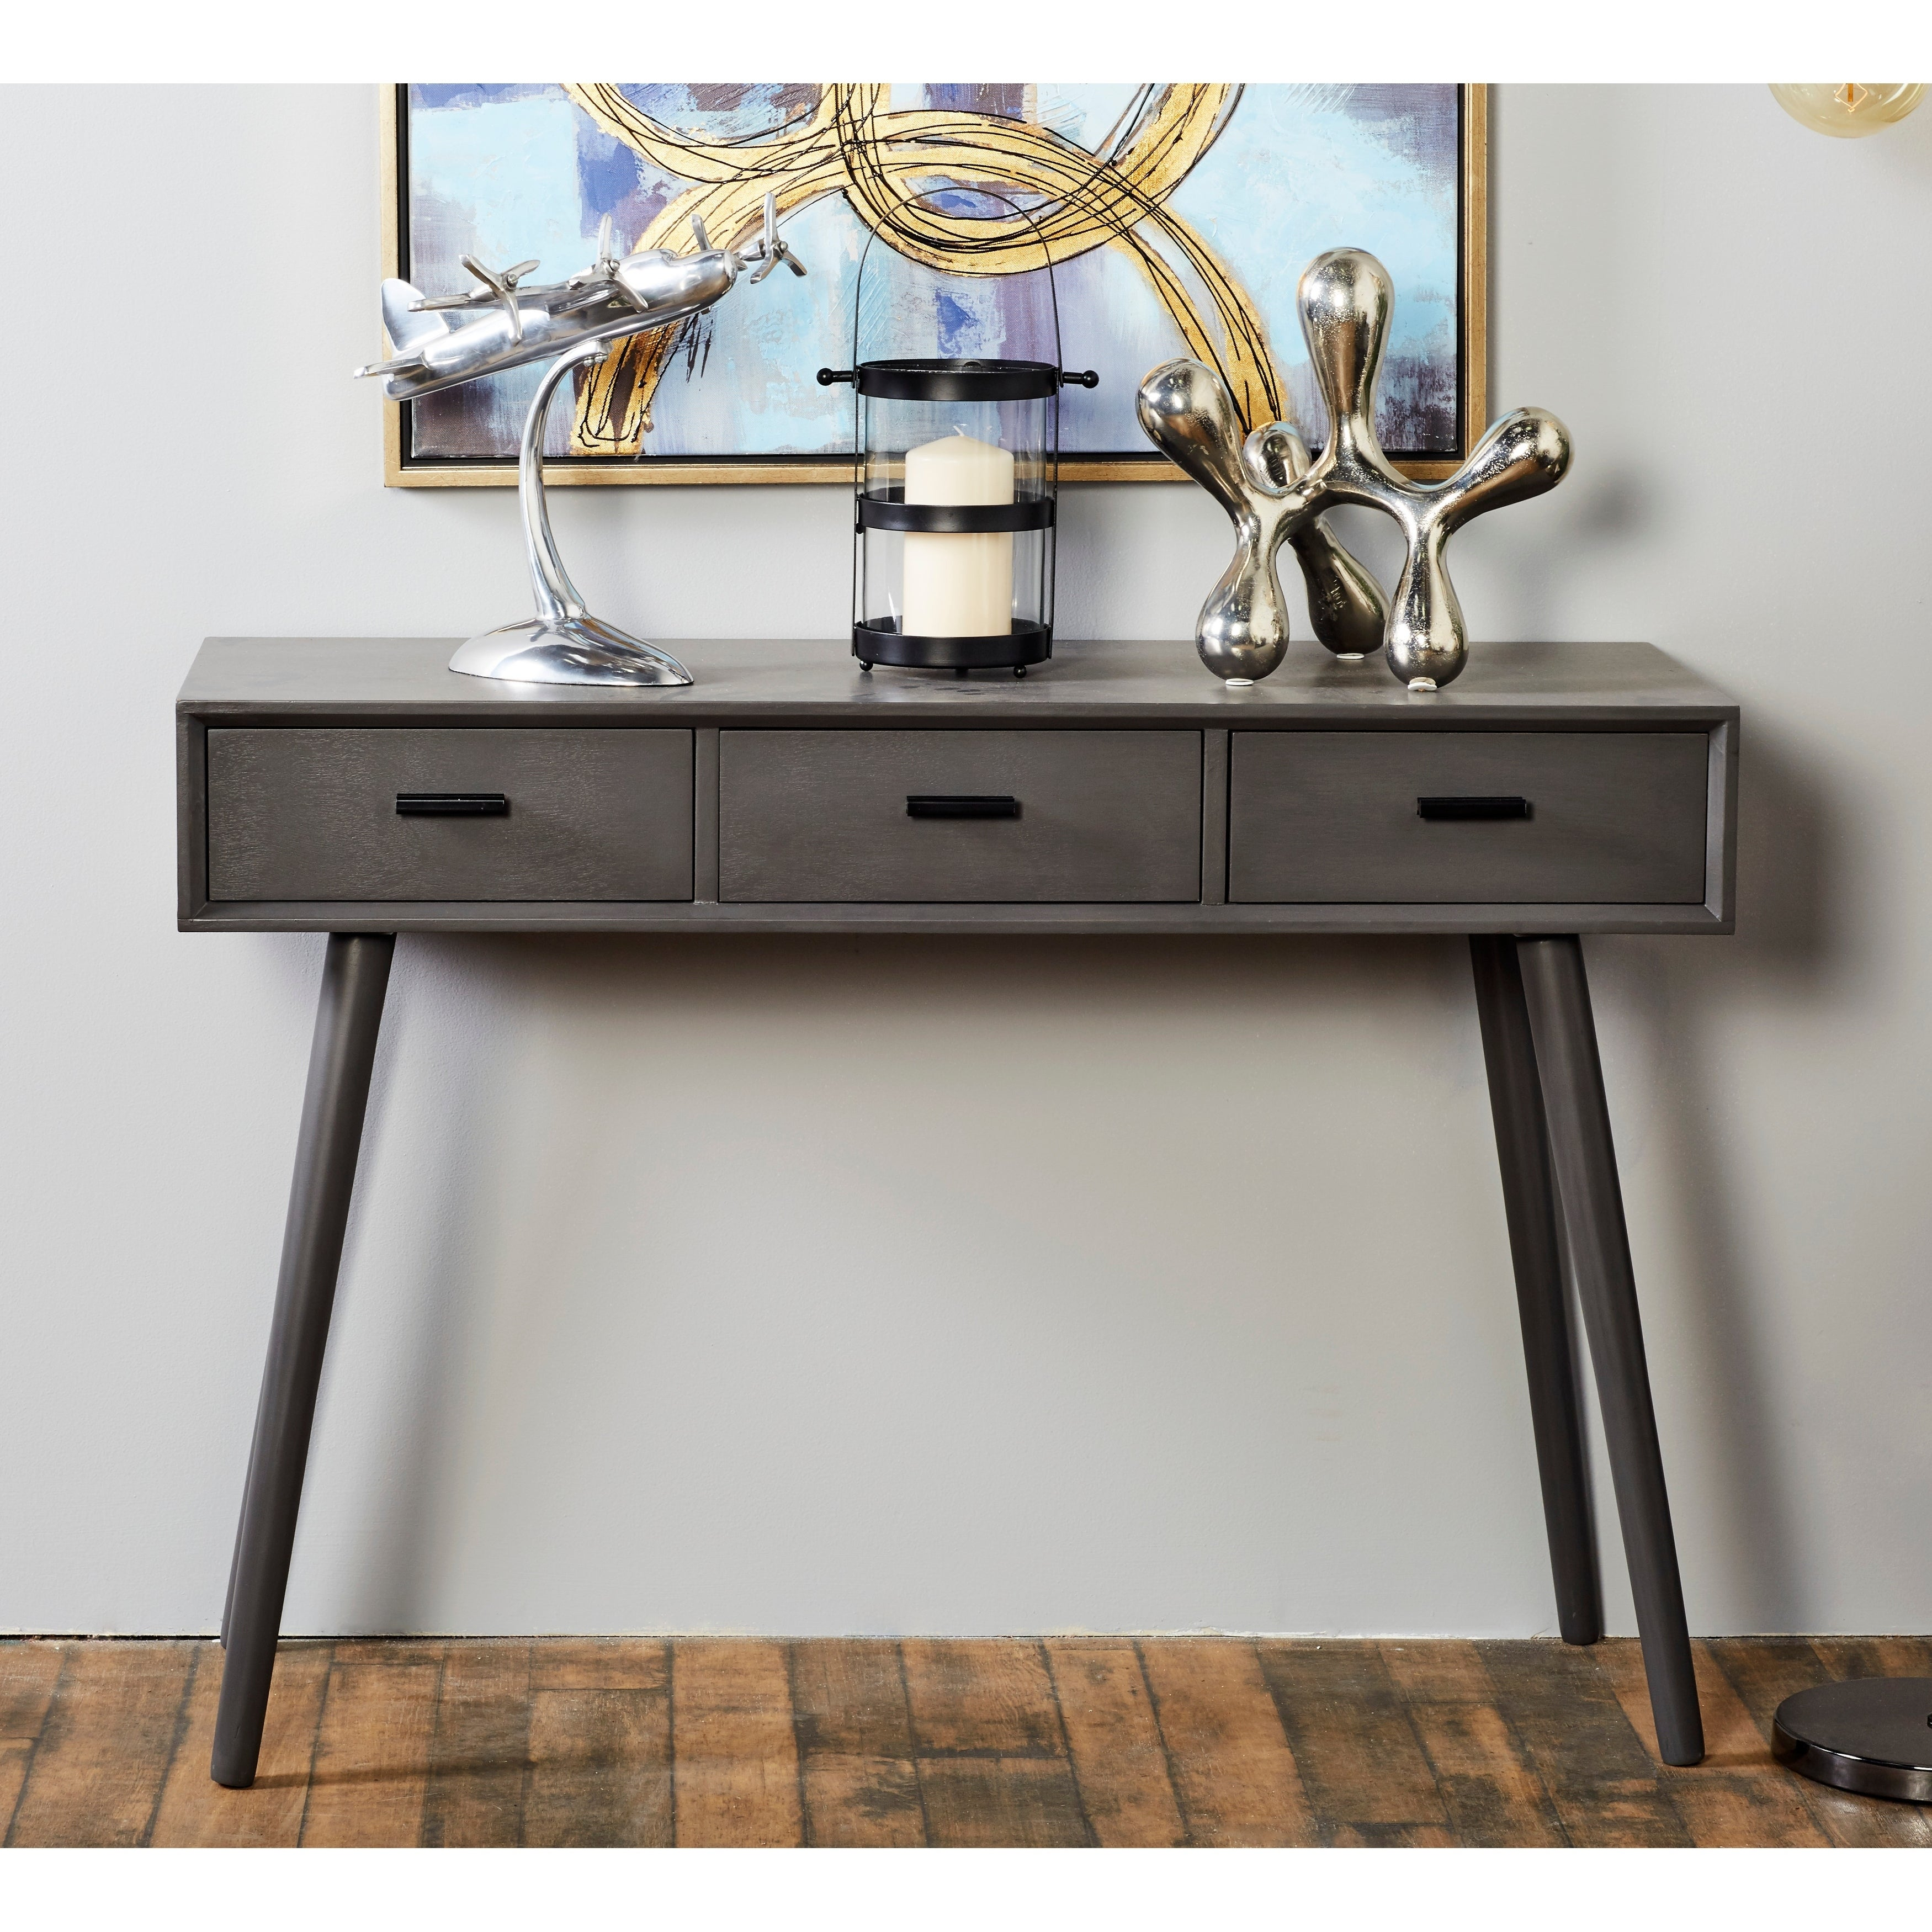 Benzara Black Wood 42 Inch Wide X 29 Inch High Console Table Overstock 13433683